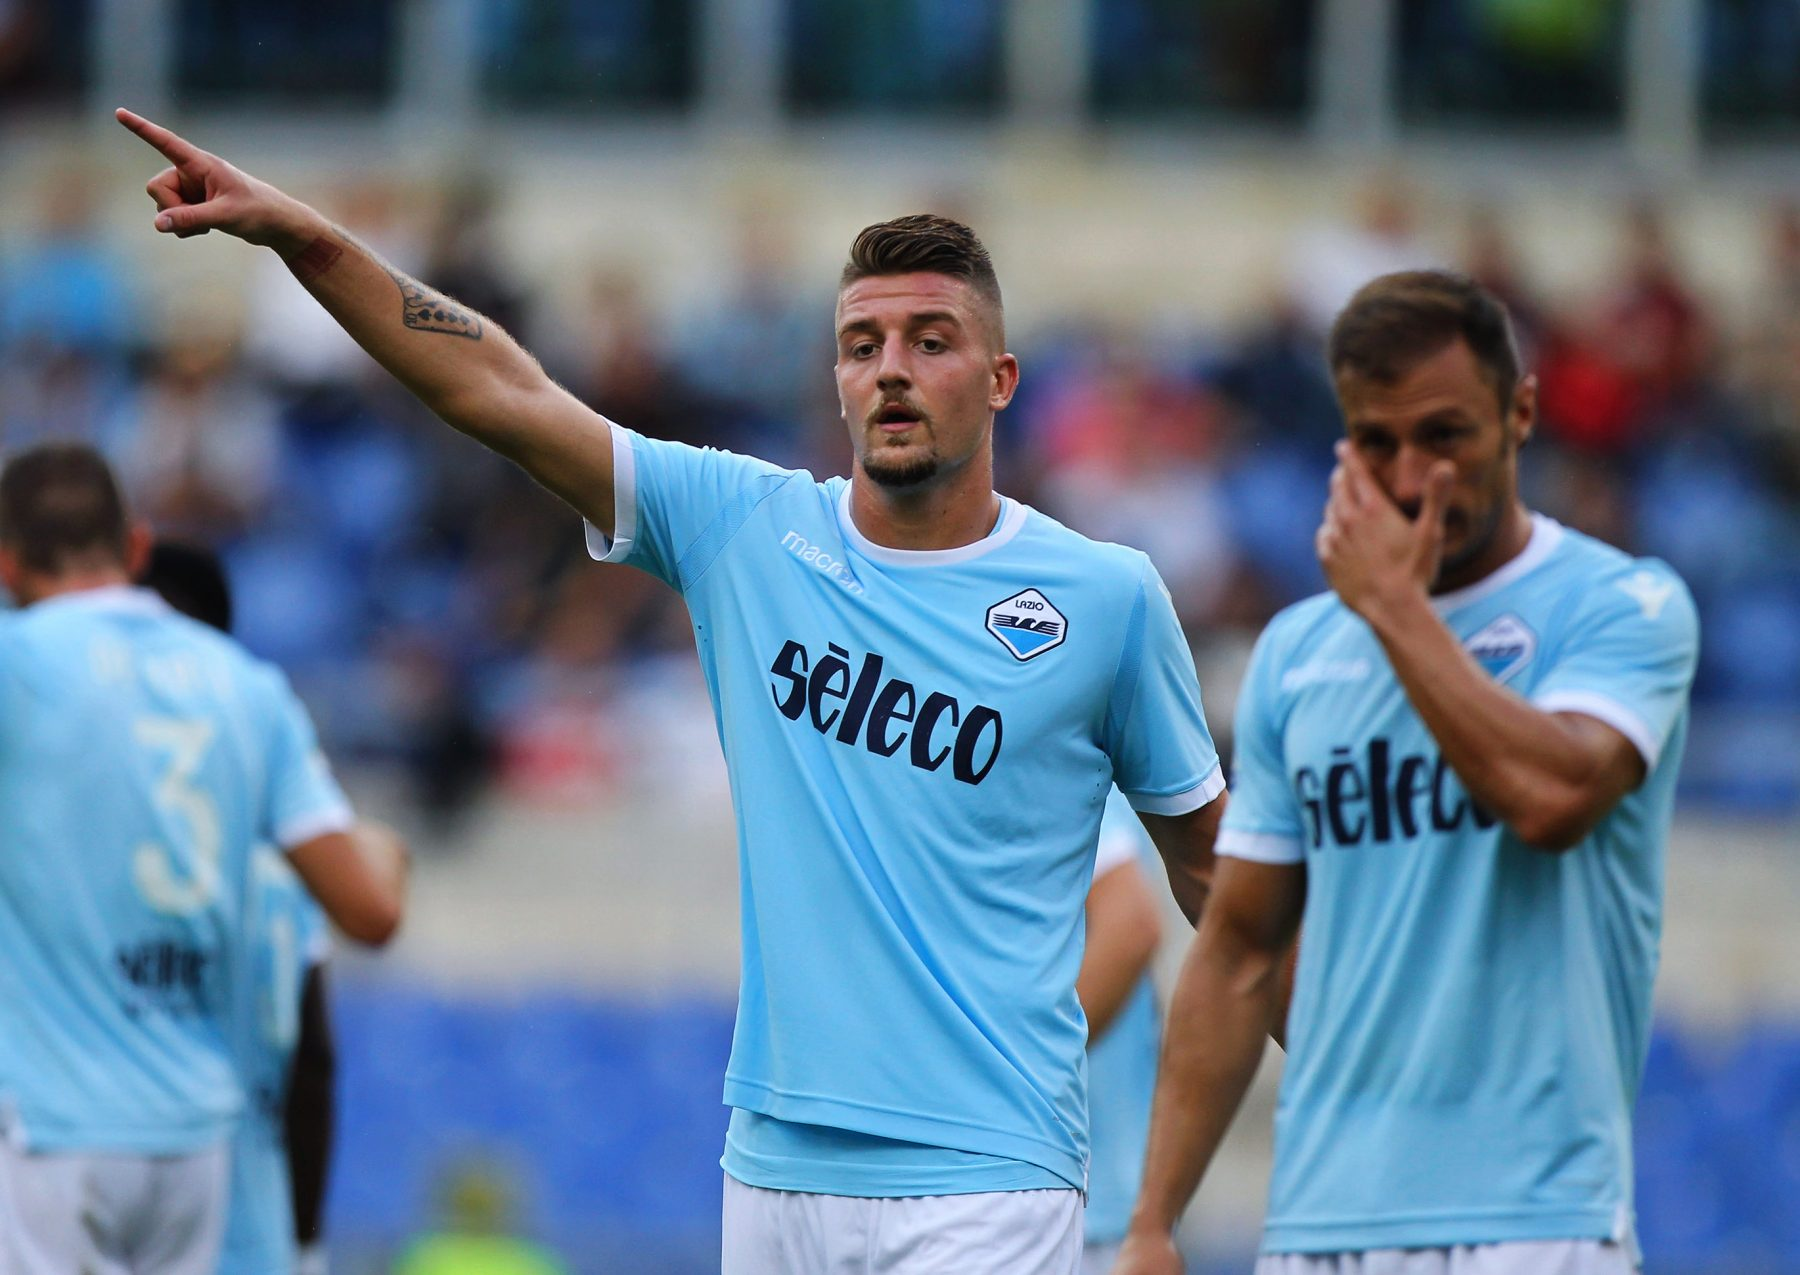 milinkovic savic - 5 Talking Points of Lazio V Juventus Match